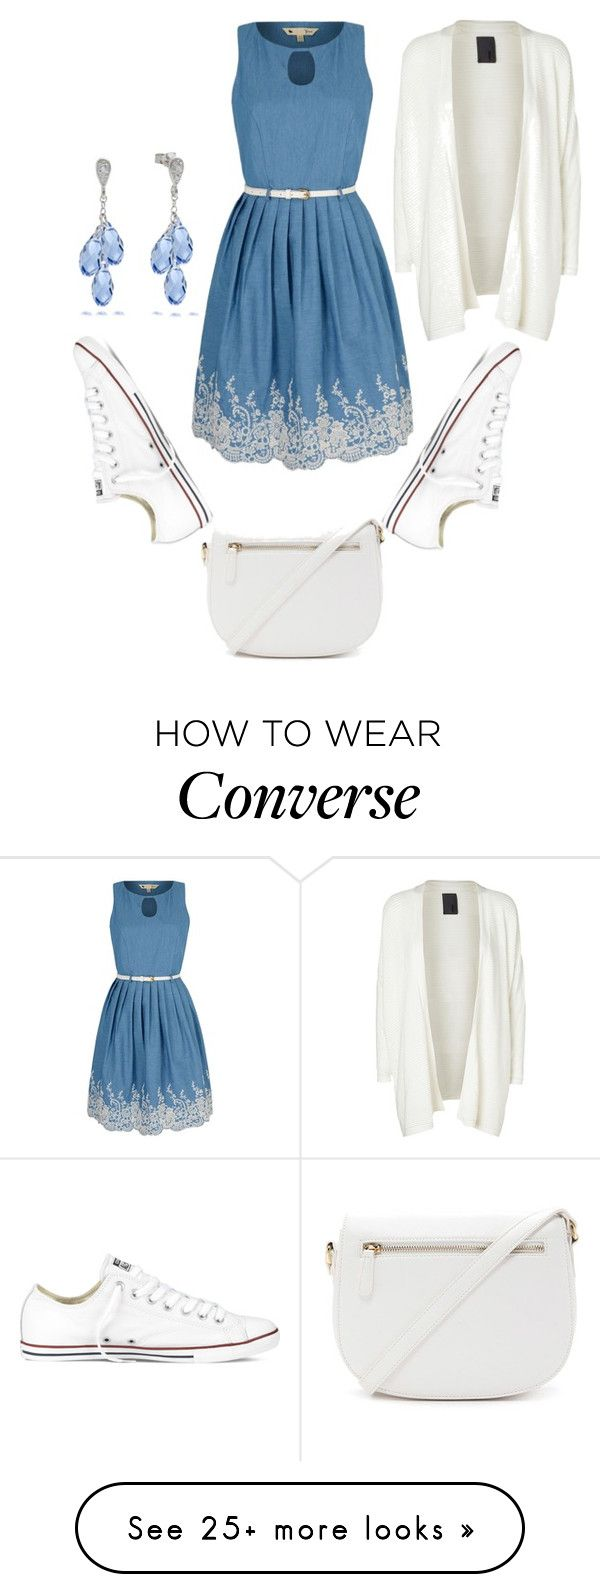 """""""Dress w/ converse"""" by adancetovic on Polyvore featuring Yumi, Converse, Minimum, Forever 21, women's clothing, women's fashion, women, female, woman and misses"""